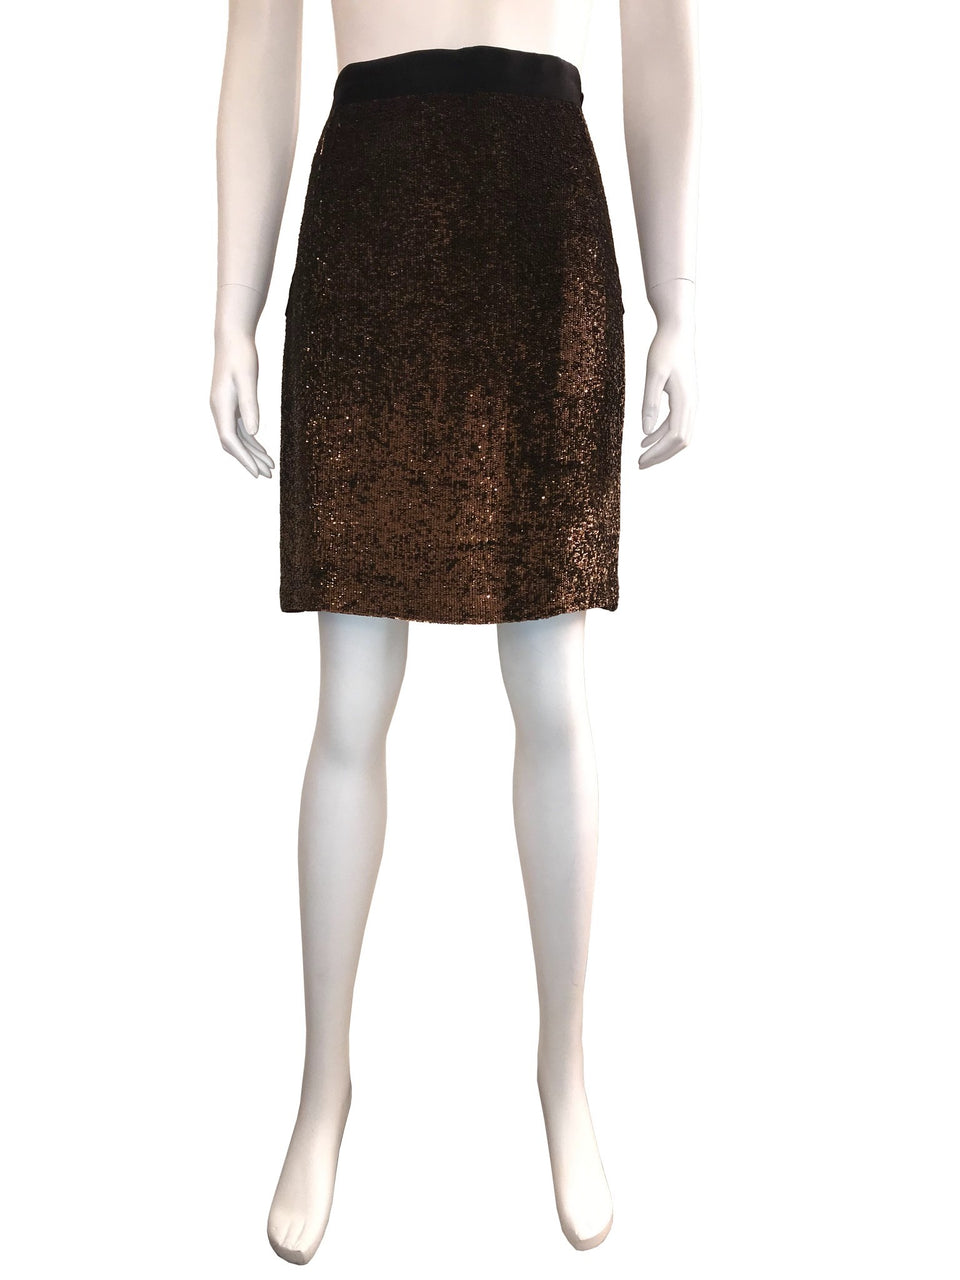 Sequin Pencil Skirt with Black Waistband